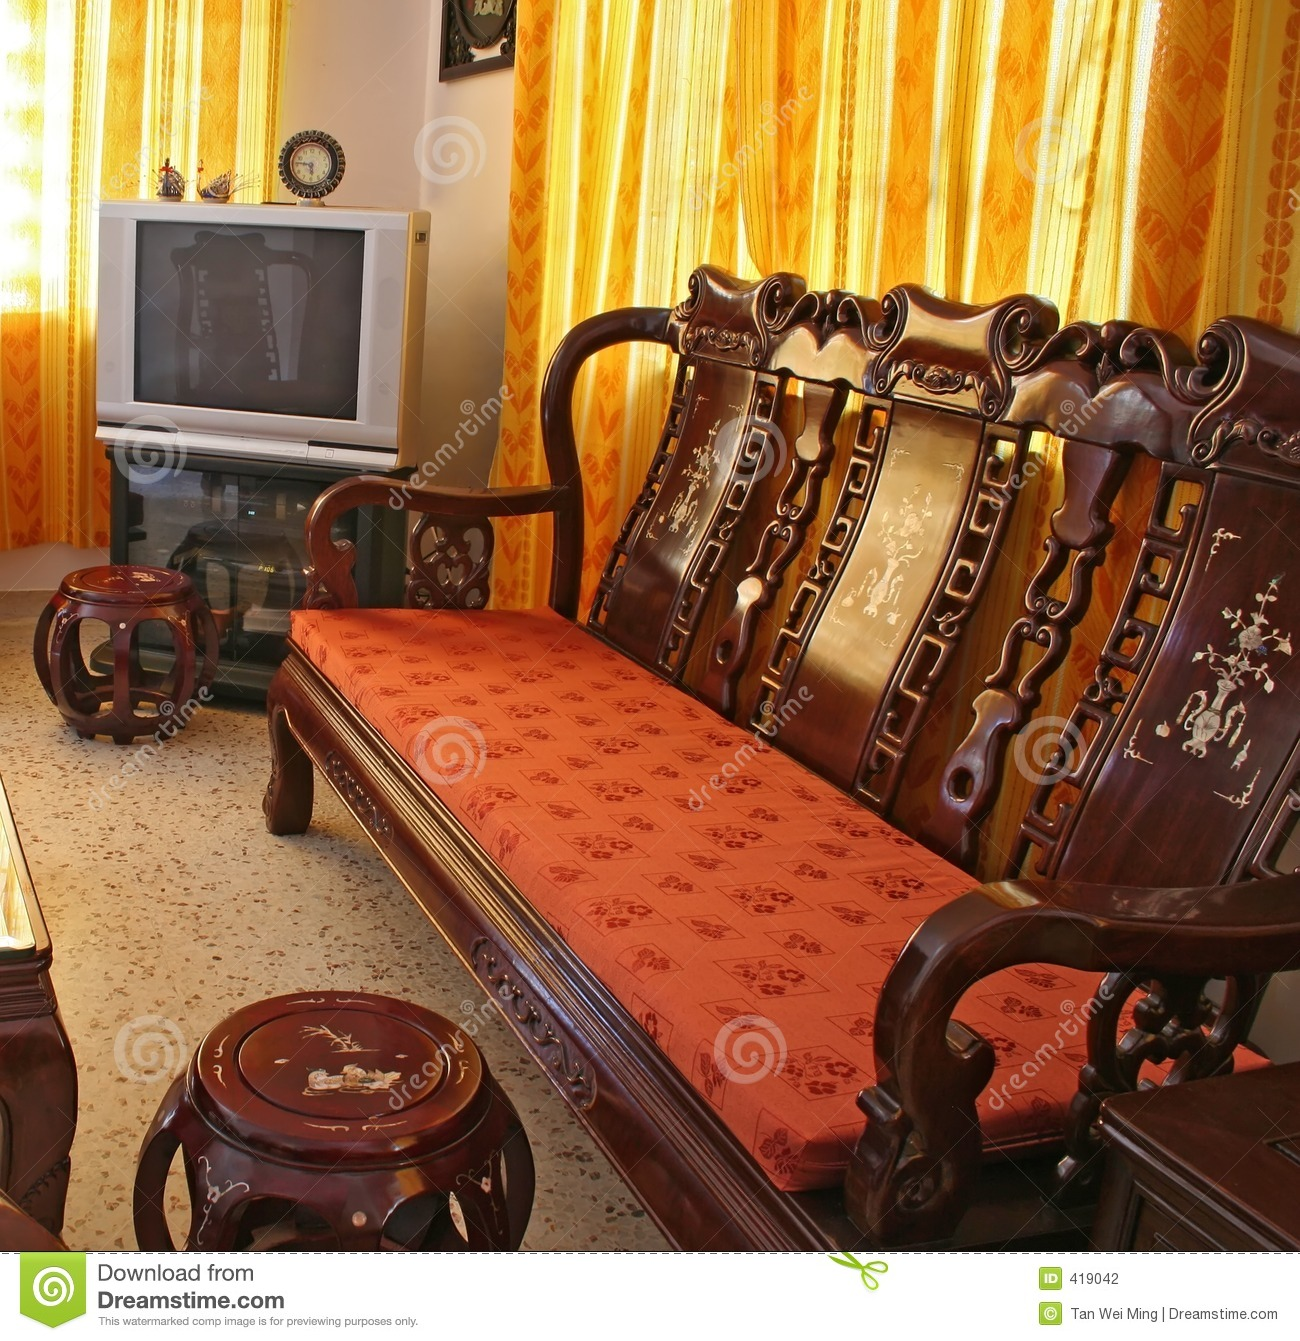 antique chinese furniture living room rosewood ... - Antique Chinese Rosewood Furniture Stock Photography - Image: 419042